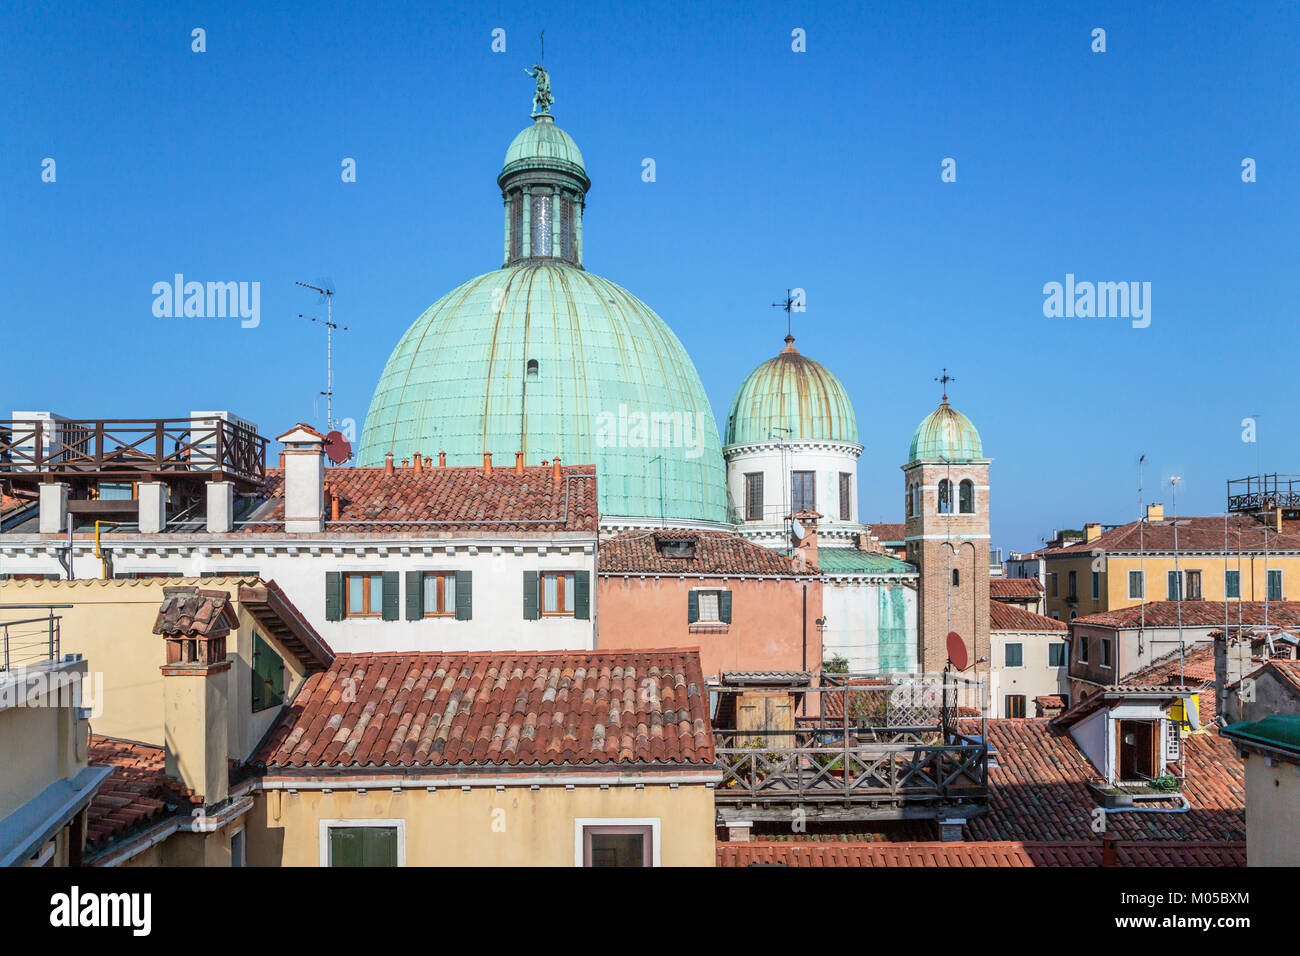 Church domes of the Church of San Simeone Piccolo  along the Grand Canal in Veneto, Venice, Italy, Europe. - Stock Image